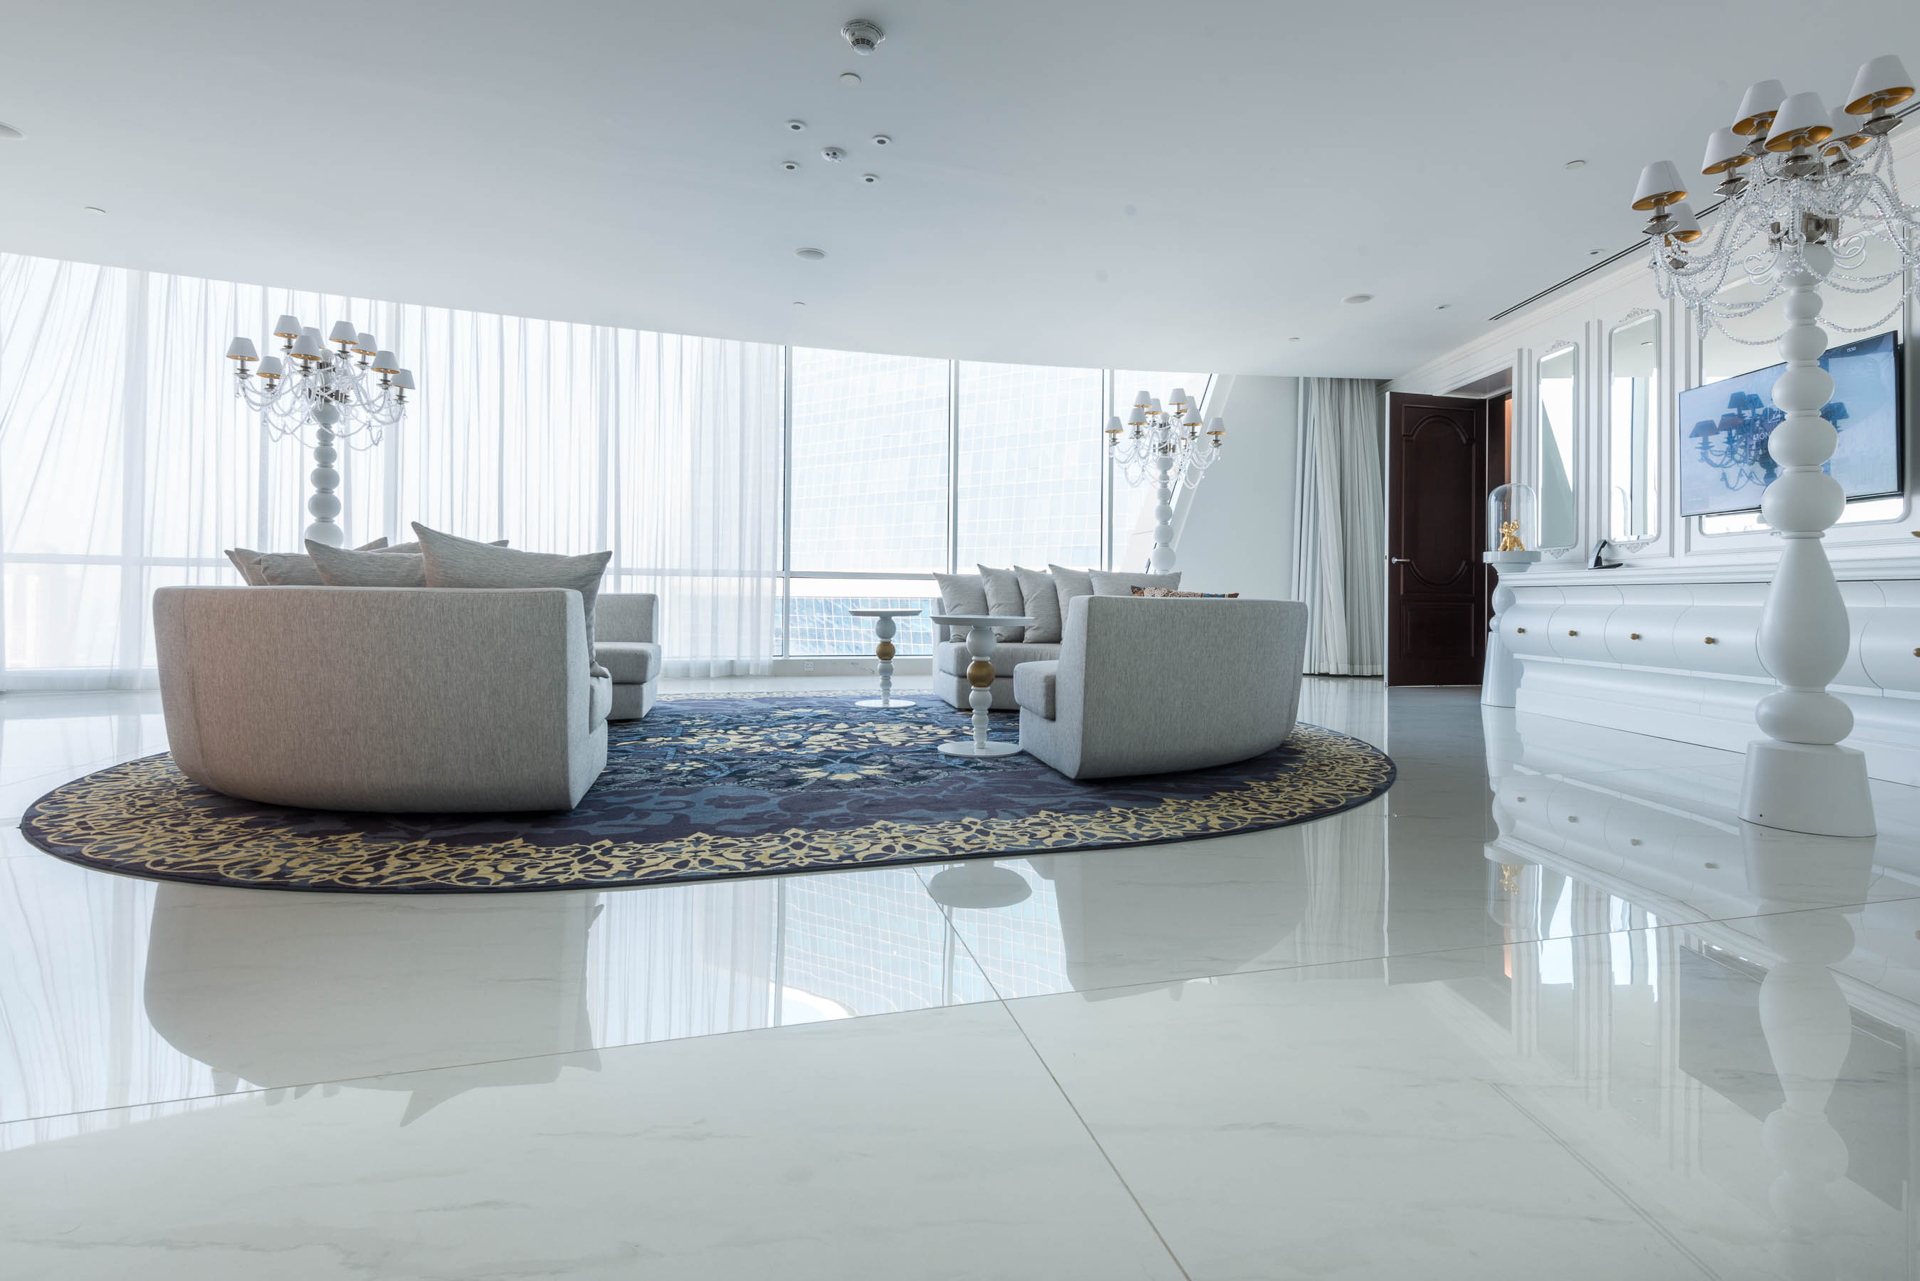 South west architecture con fmg mondrian doha en qatar for Casa moderna 15x15